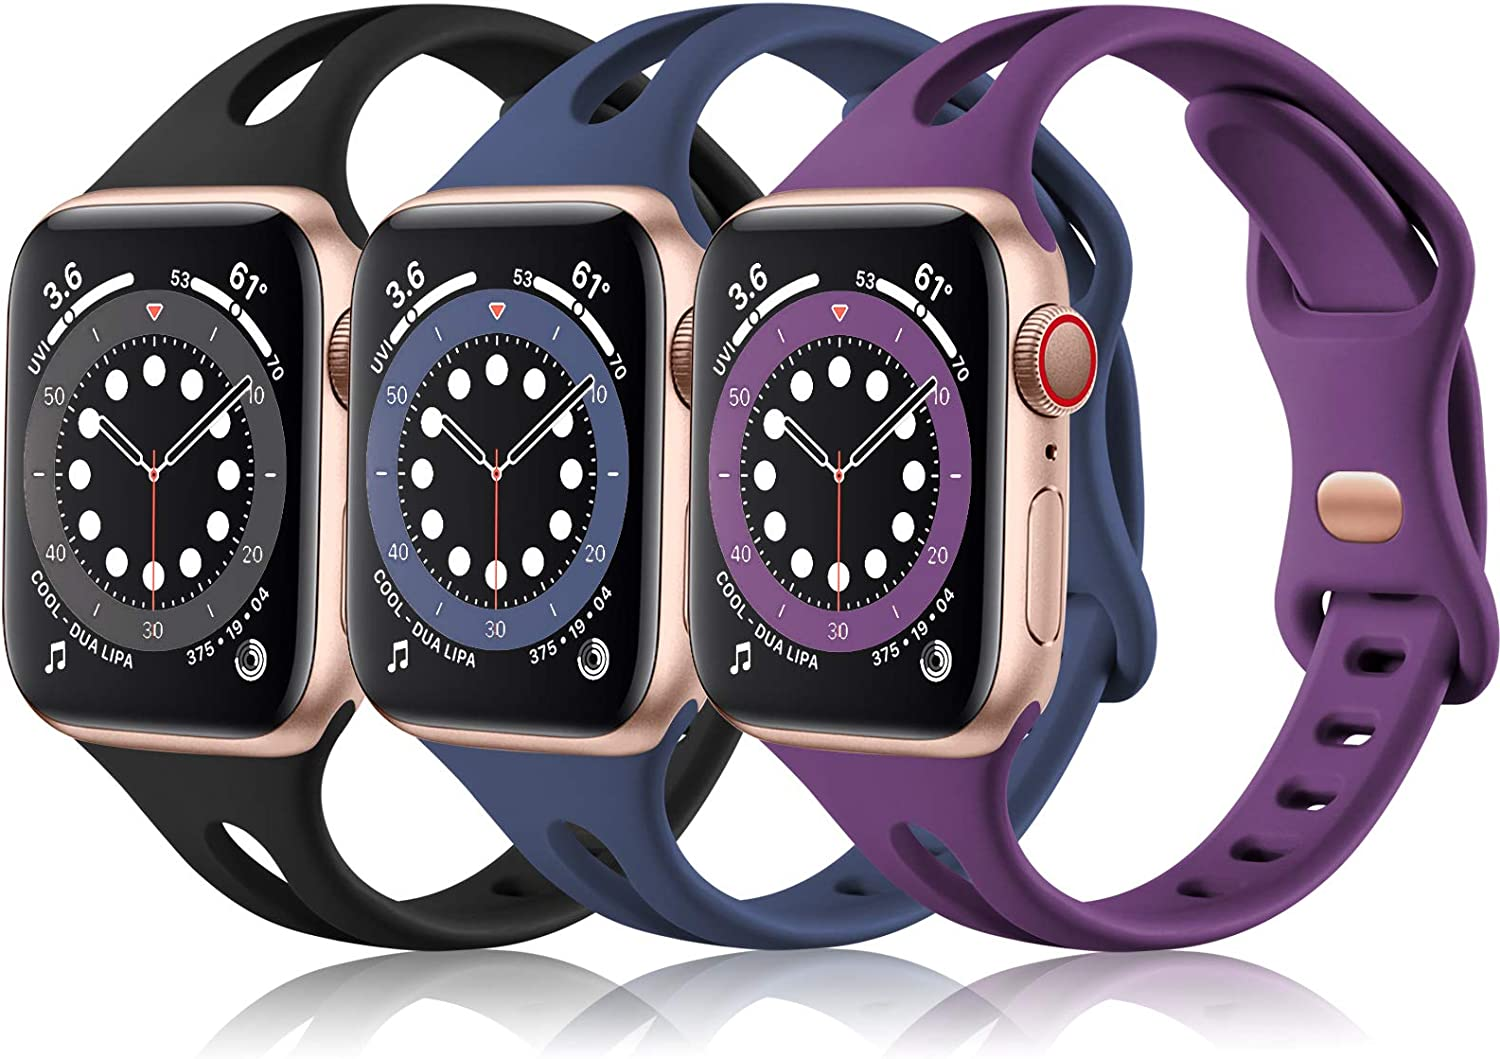 (3 Pack) Vcegari Slim Band Compatible with Apple Watch 38mm 40mm Women, Soft Silicone Replacement Wristband for iWatch Series 6 5 4 3 2 1 SE, Black/Navy/Plum